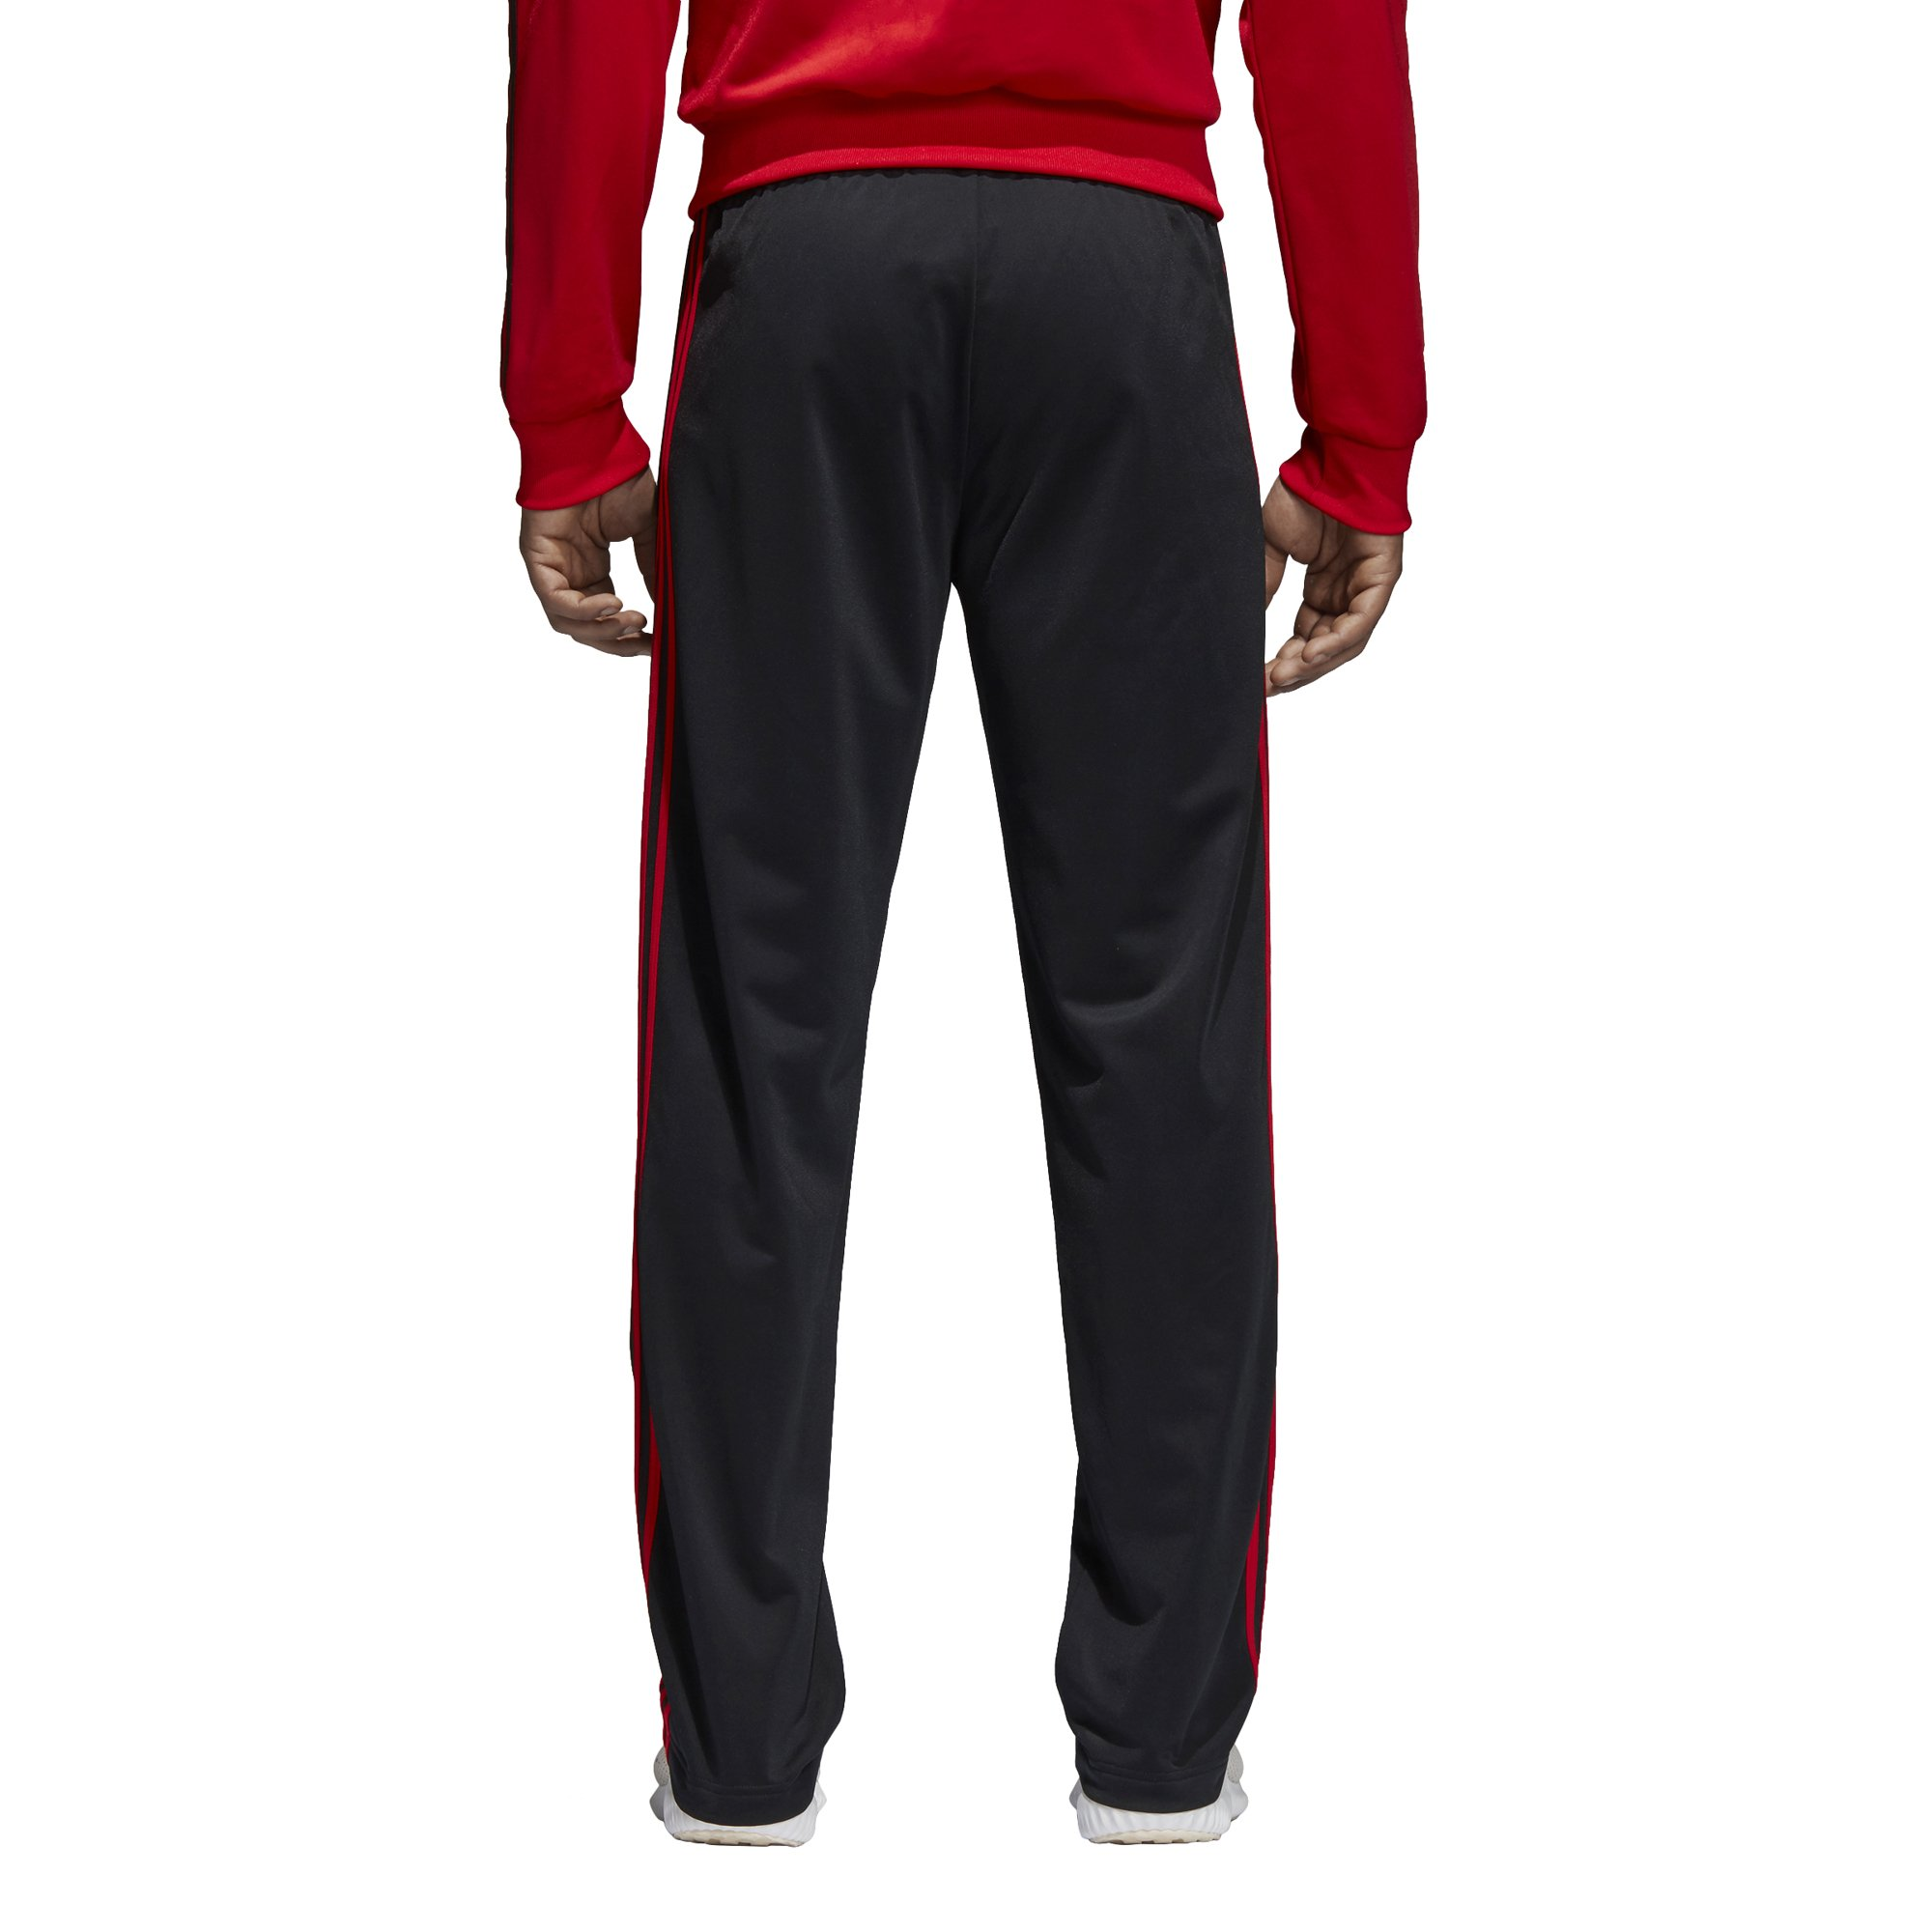 adidas Men's Athletics Essential Tricot 3-Stripe Pants, Black/Scarlet, Small by adidas (Image #5)